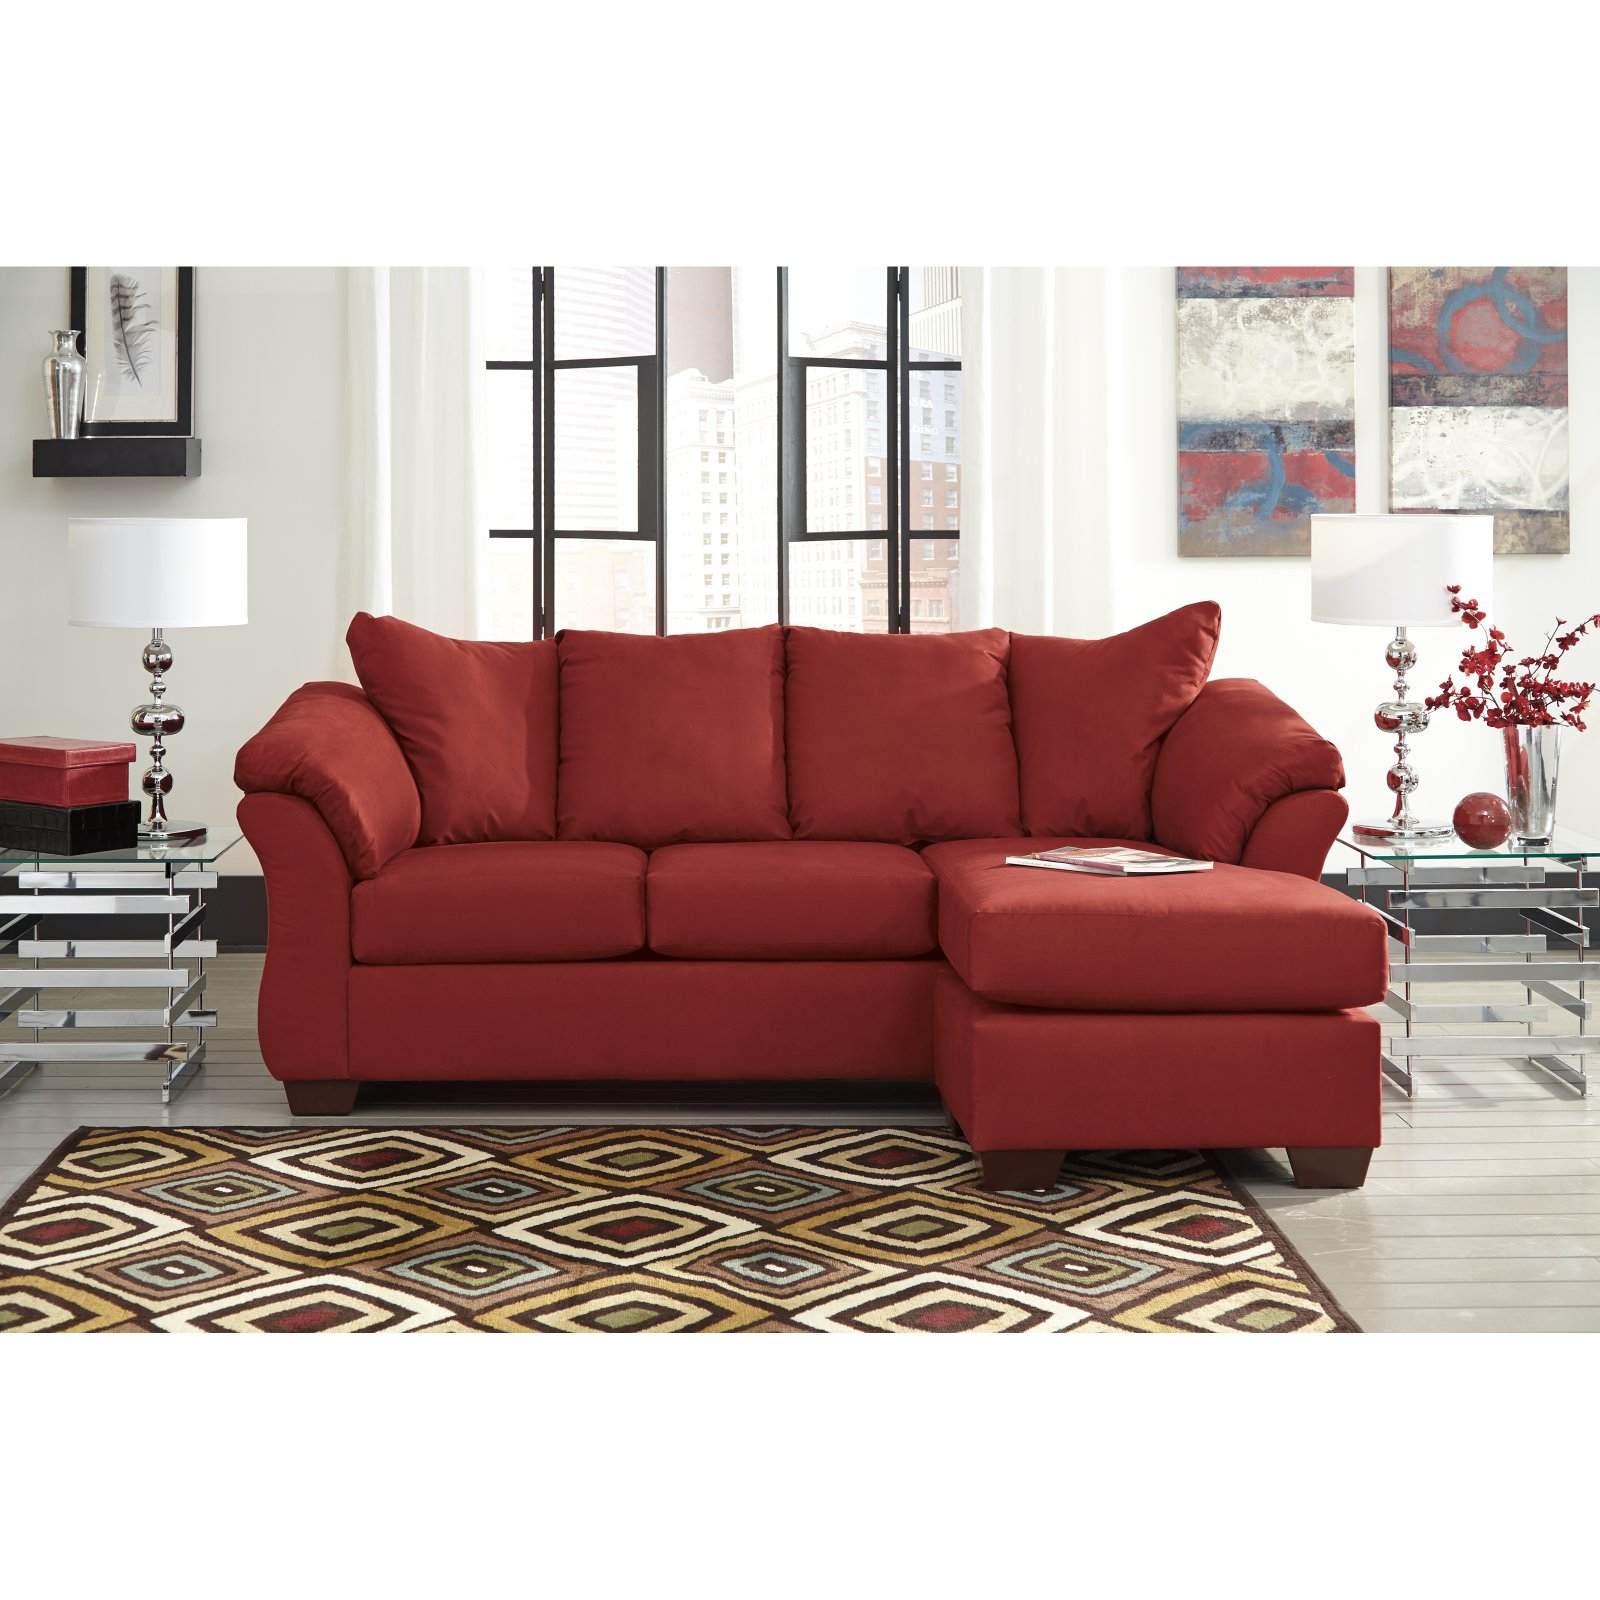 Signature Design by Ashley Darcy Sofa Chaise Walmart